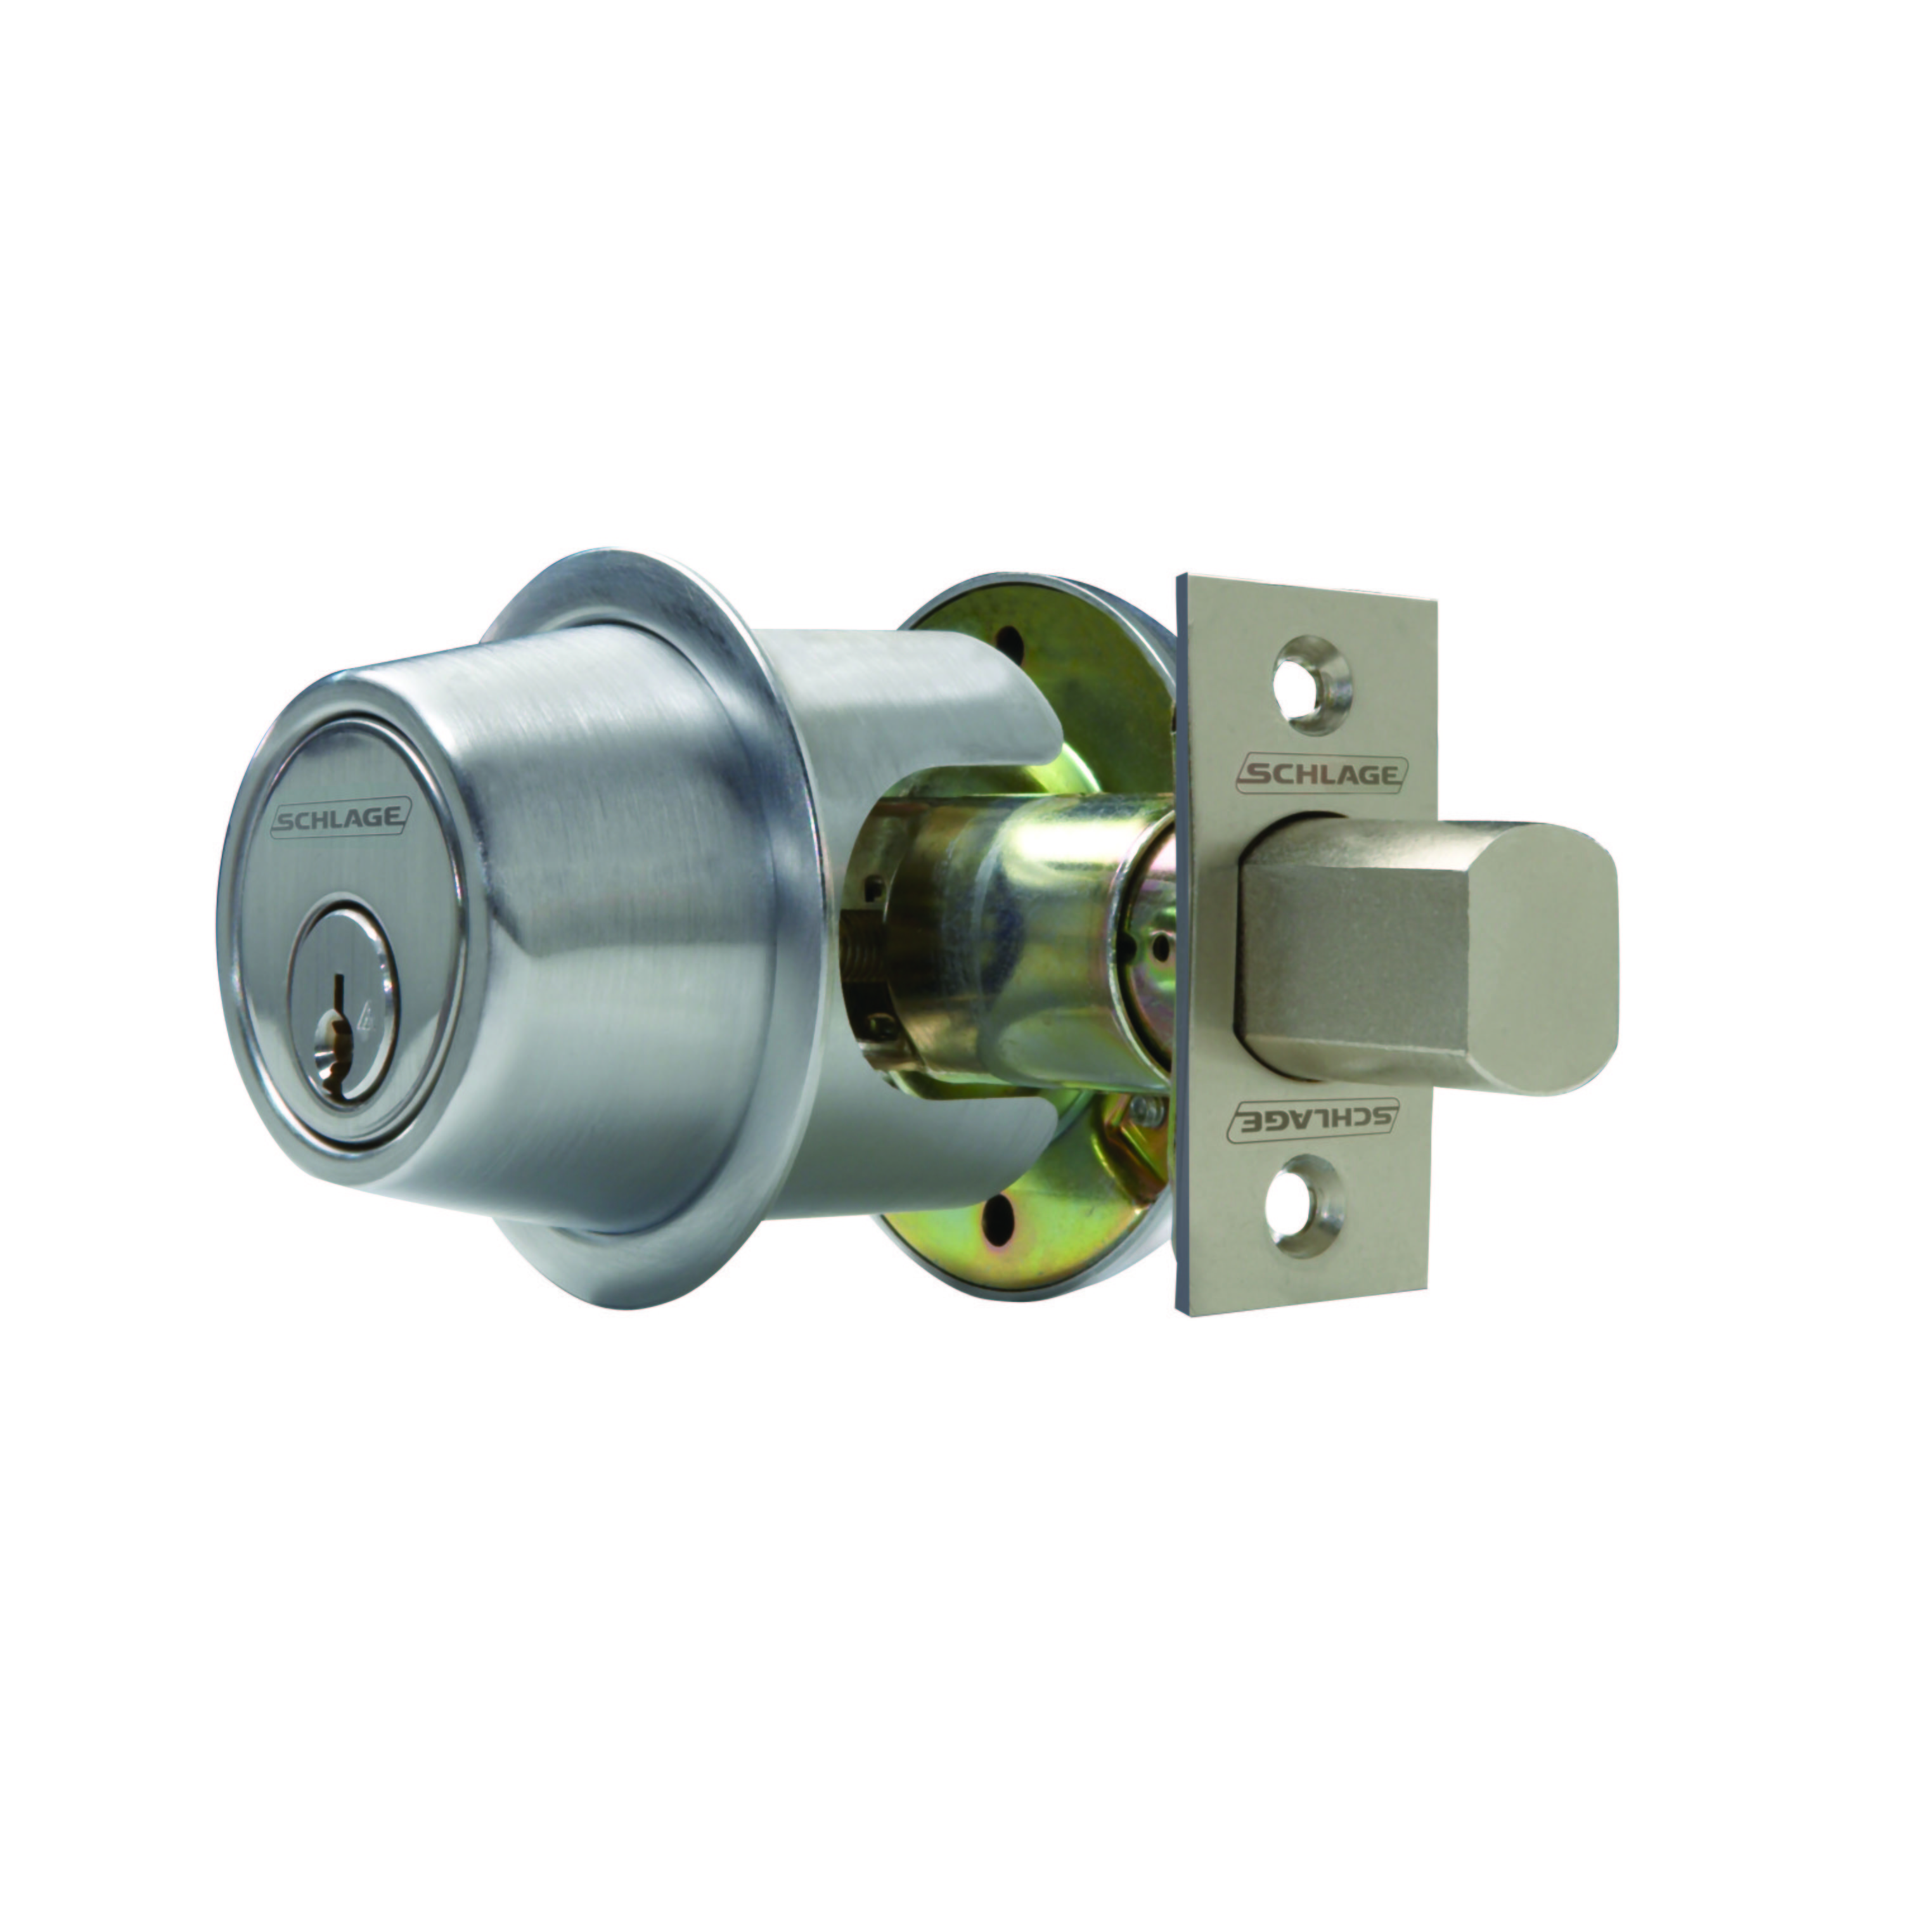 Schlage B500 Series Deadbolts By Allegion